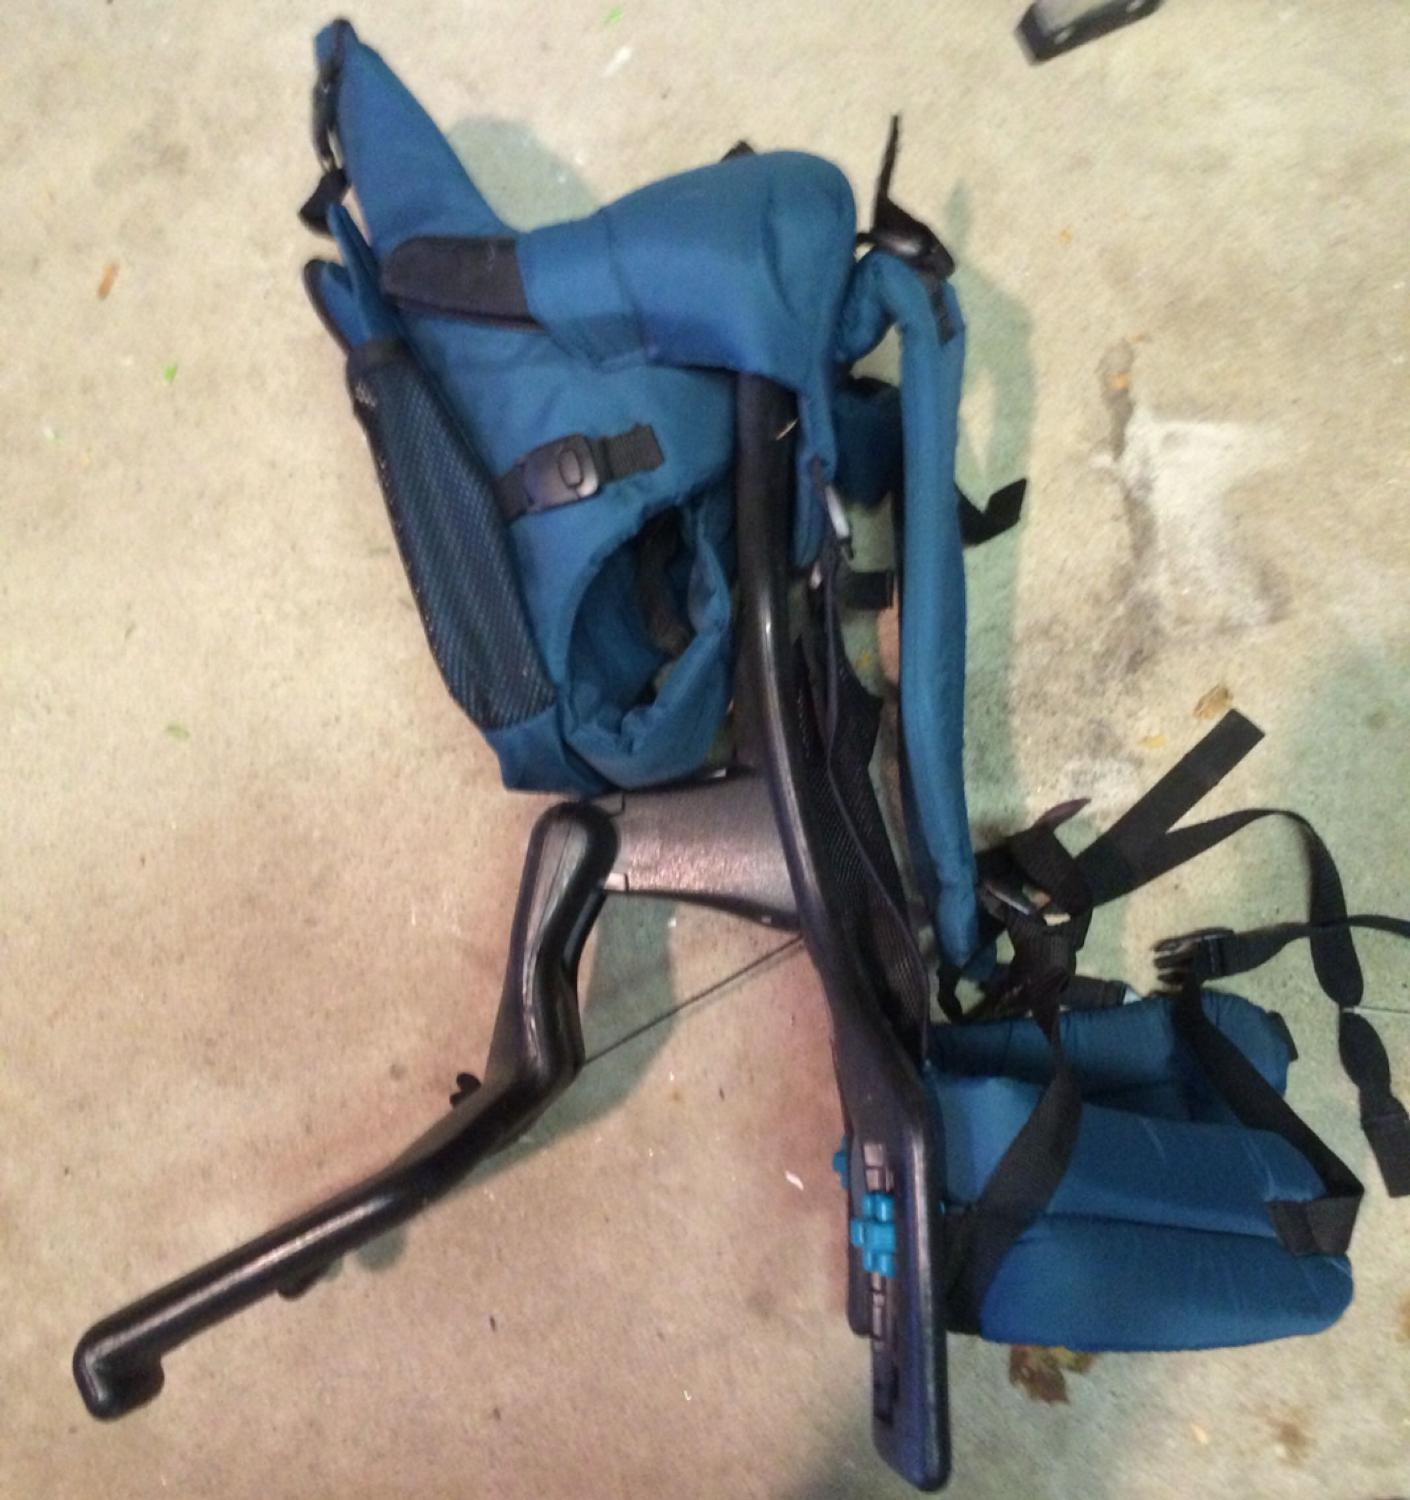 Evenflo Trail Tech Hiking Backpack Weight Limit Regreen